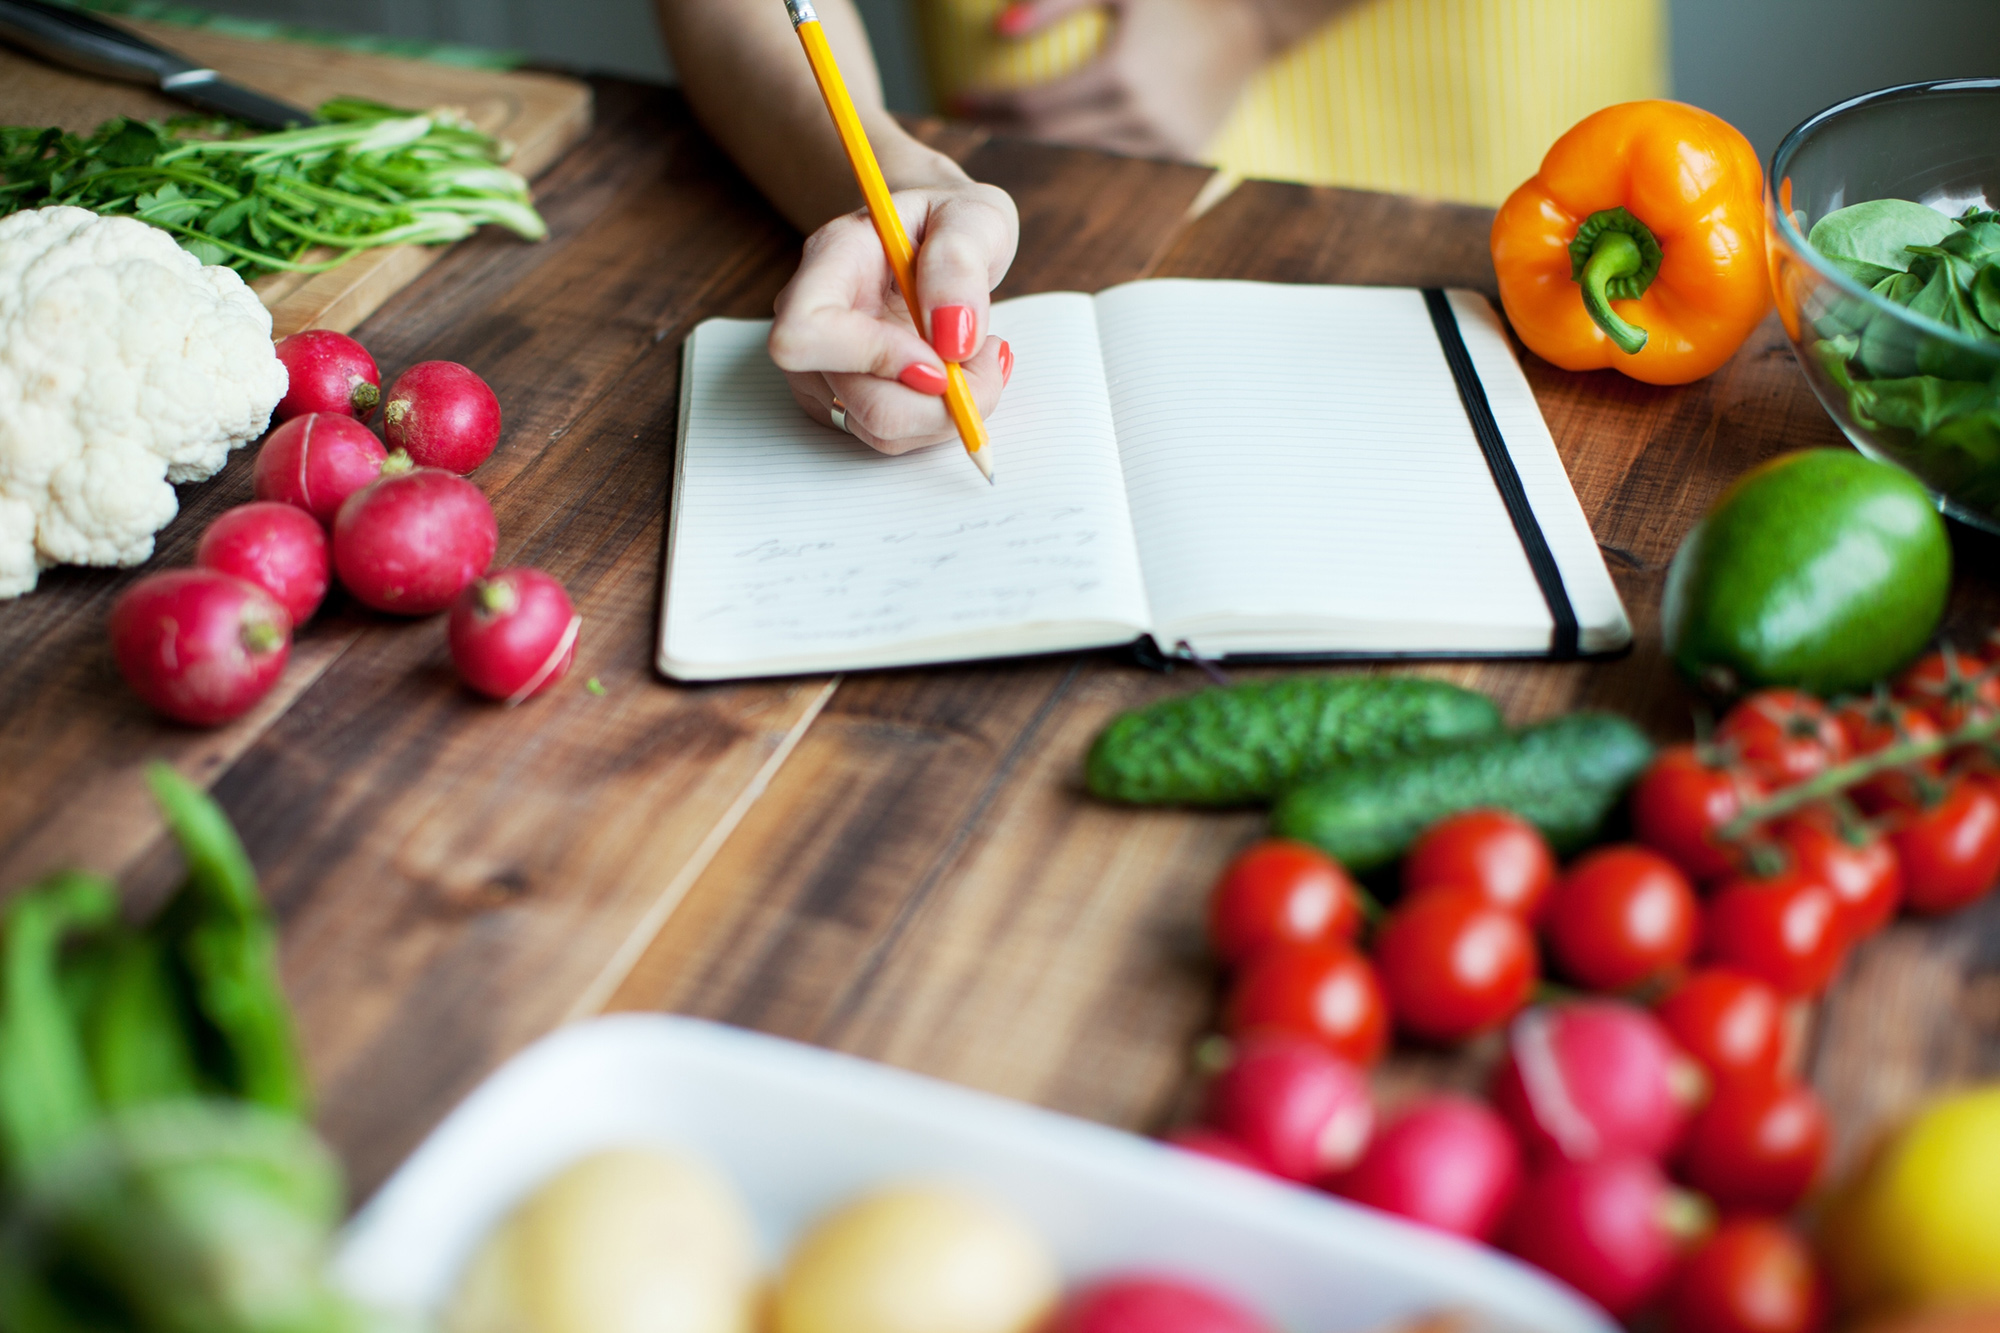 Eliminate Processed Foods From Your Diet